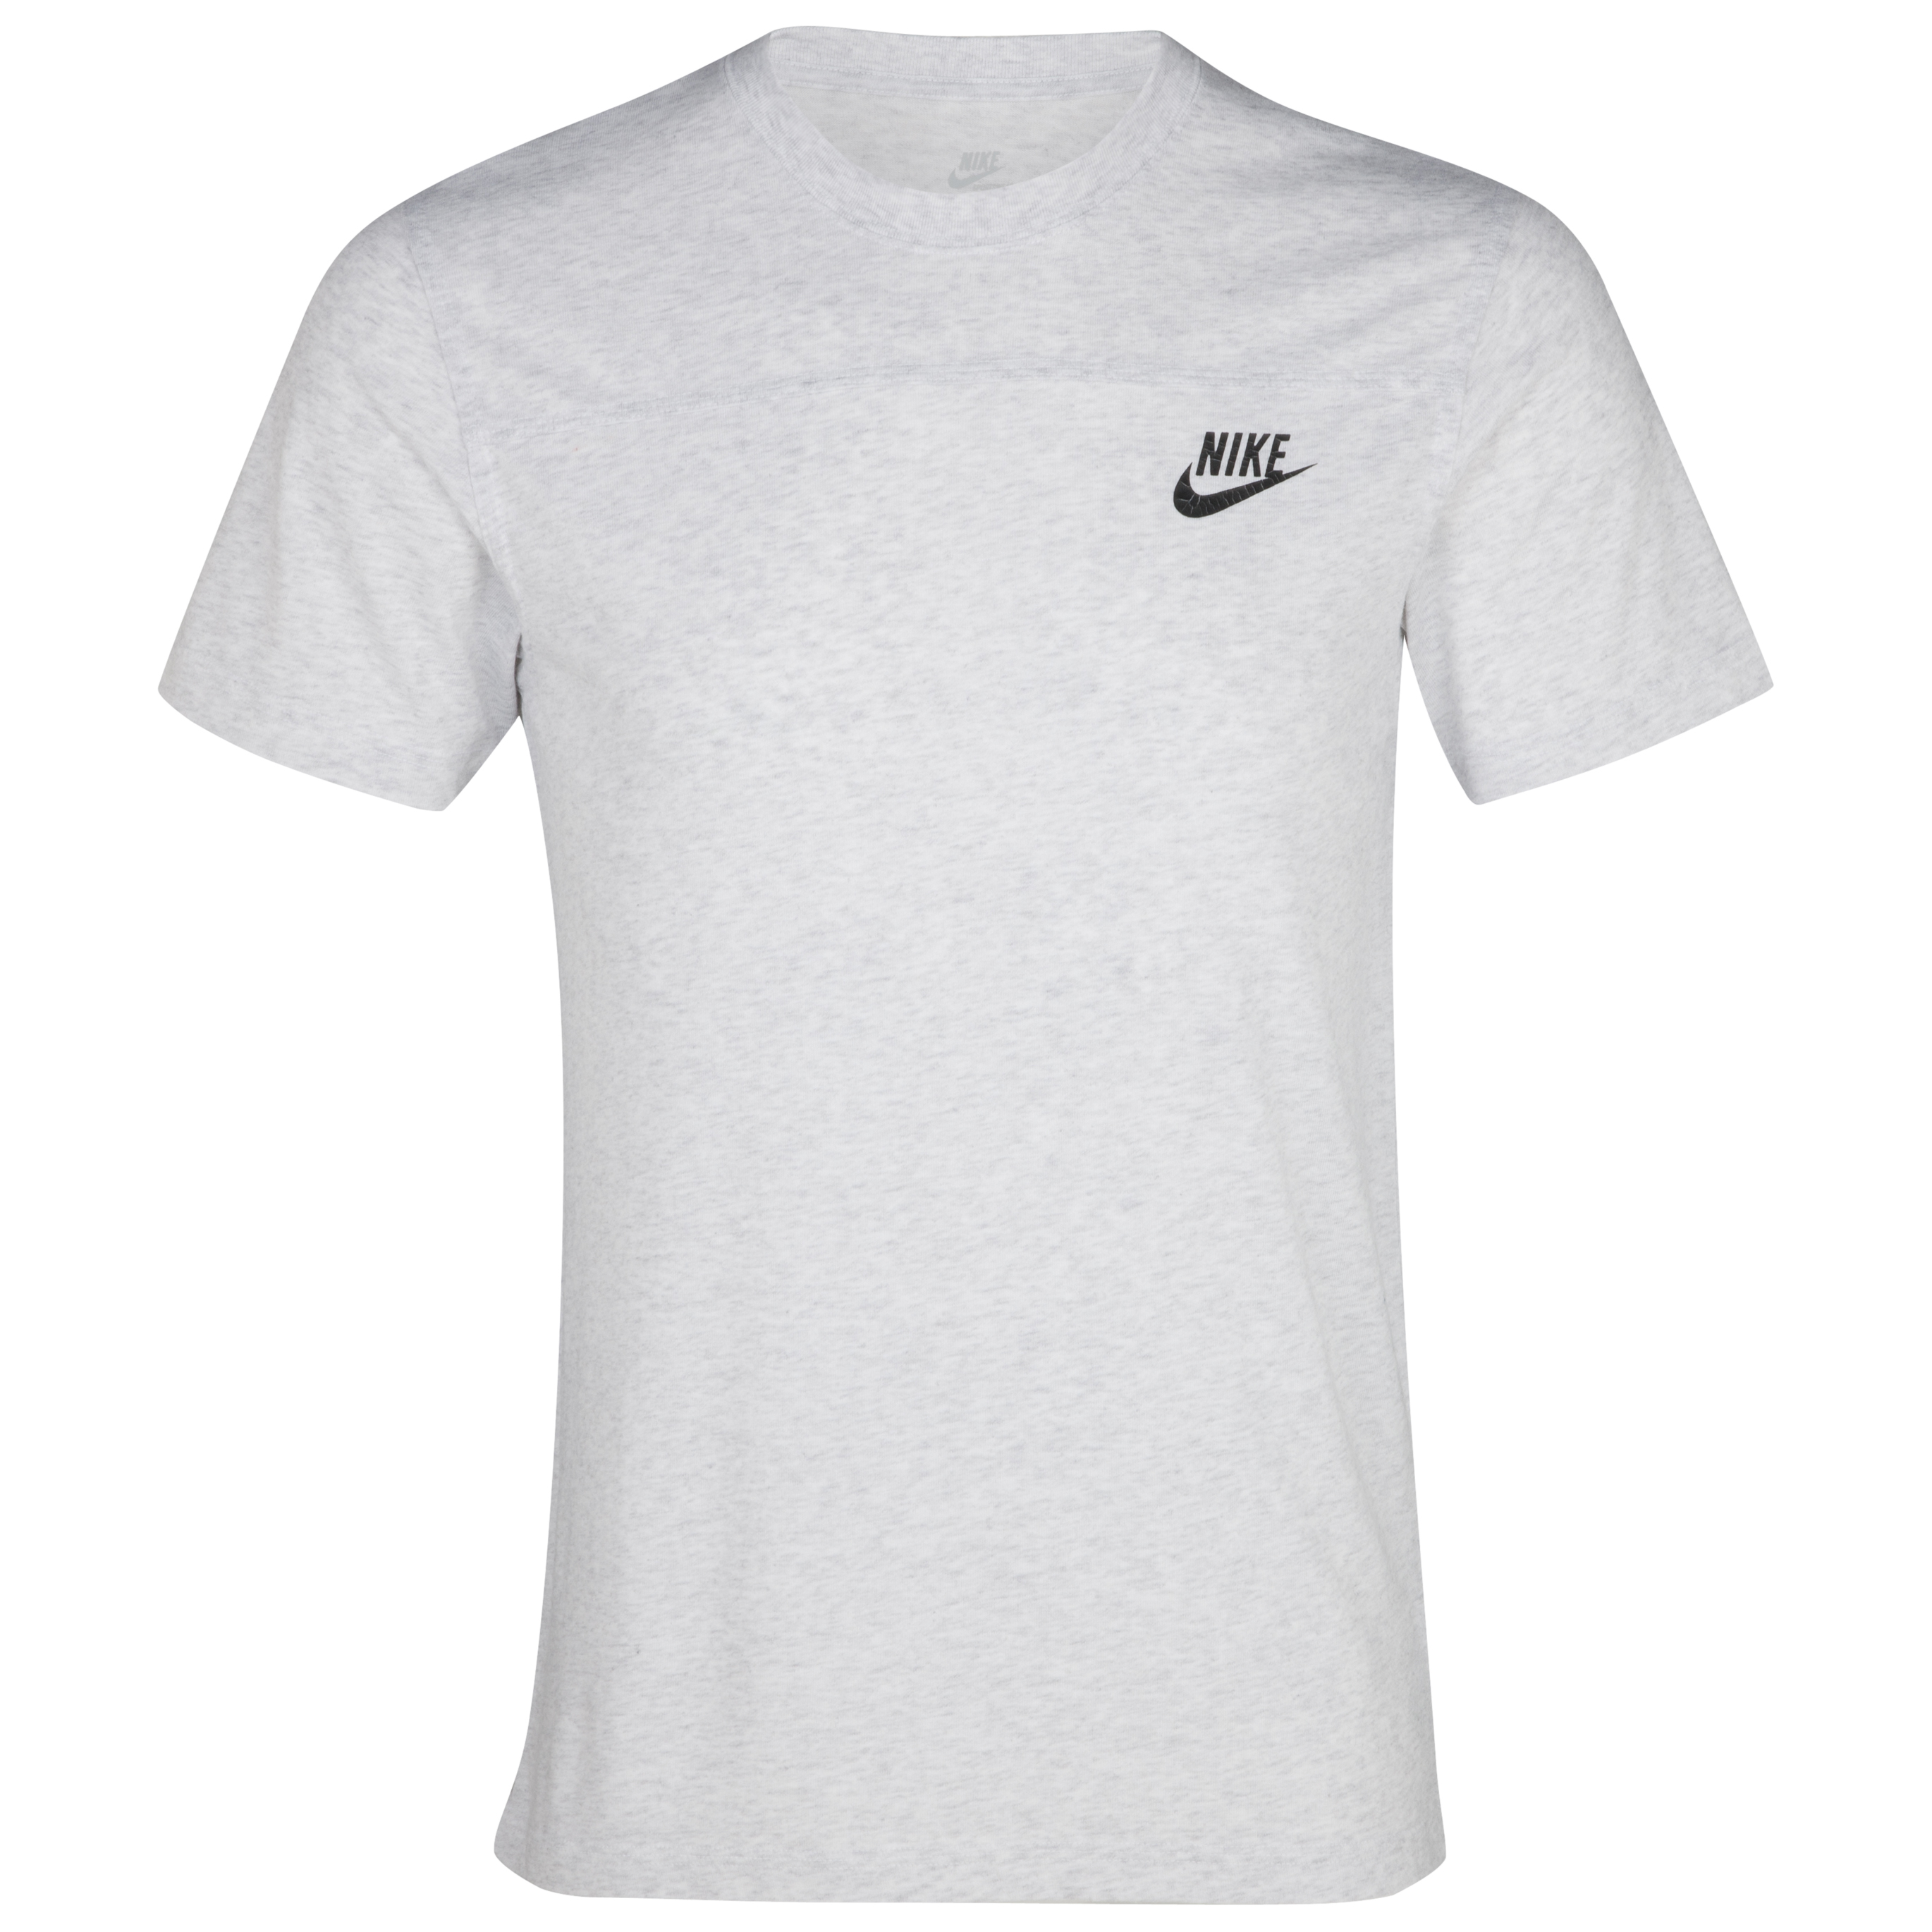 Nike Alumni T-Shirt - Birch Heather/Black